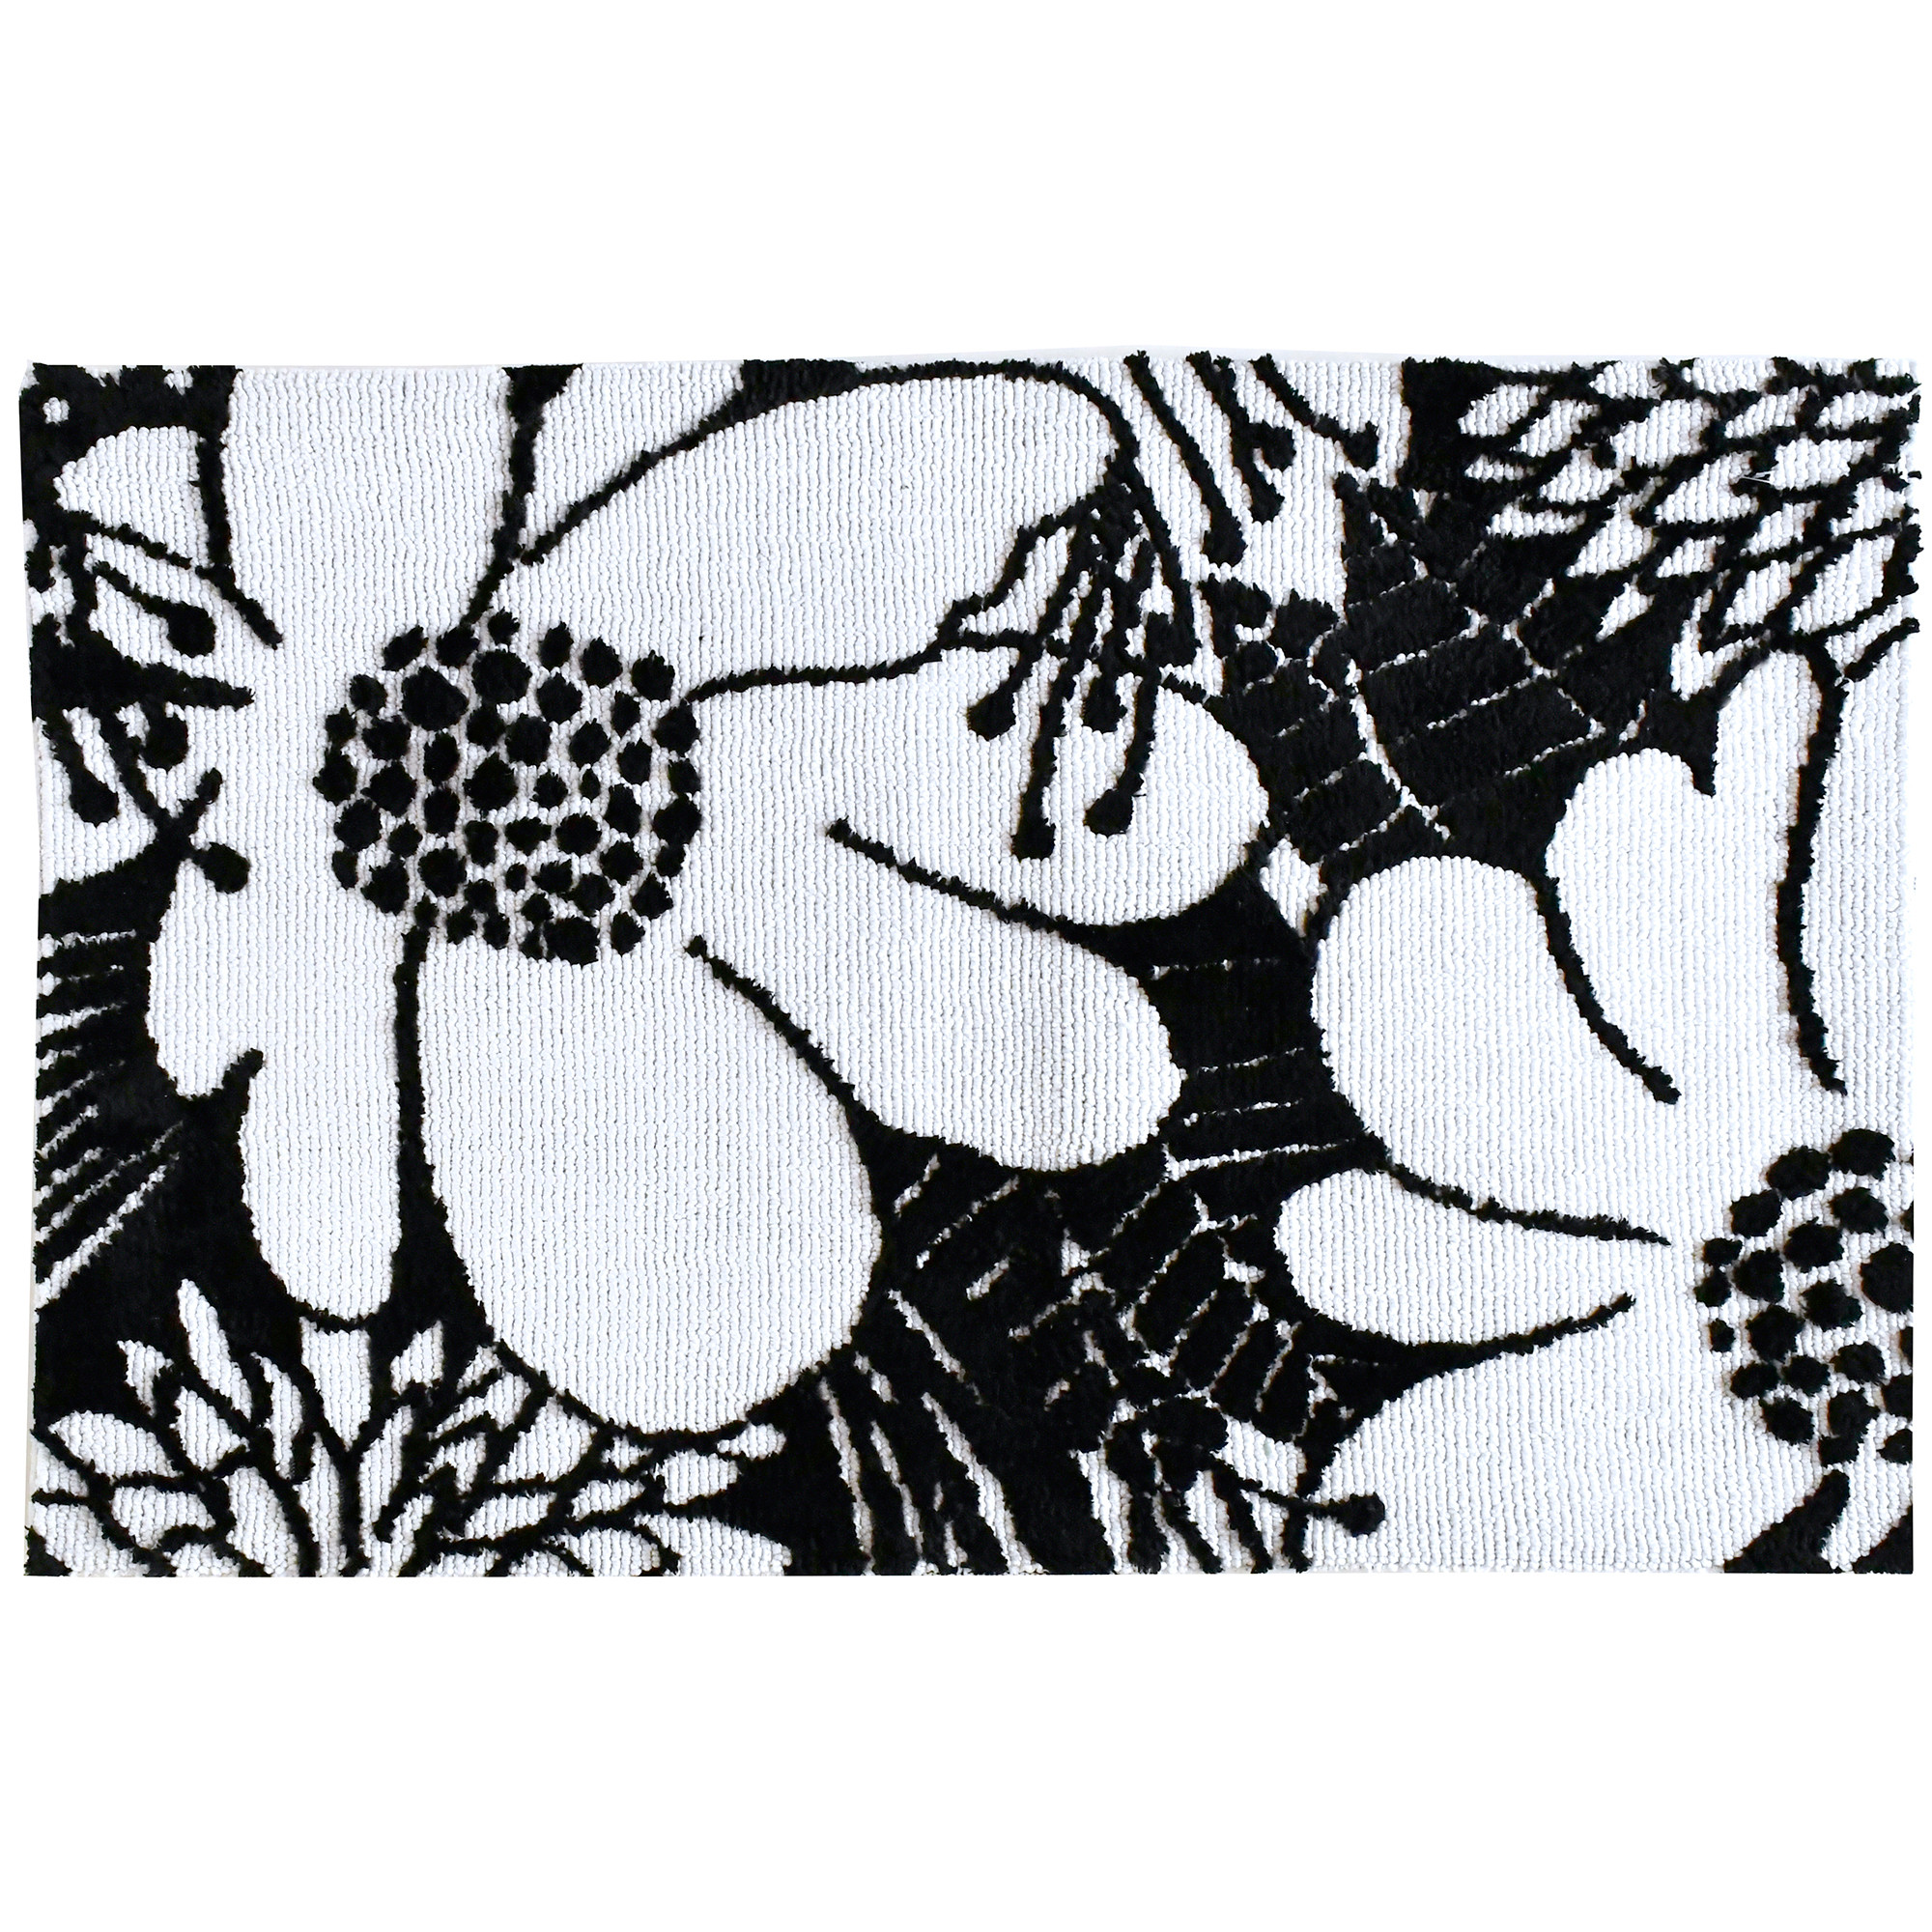 Designer Michael Mullan has us feeling groovy with this Simple Spaces by Jellybean® accent rug. Available in two sizes, the simplicity of black and white coupled with a bold floral design on this rug will stand out in the room large, or small.